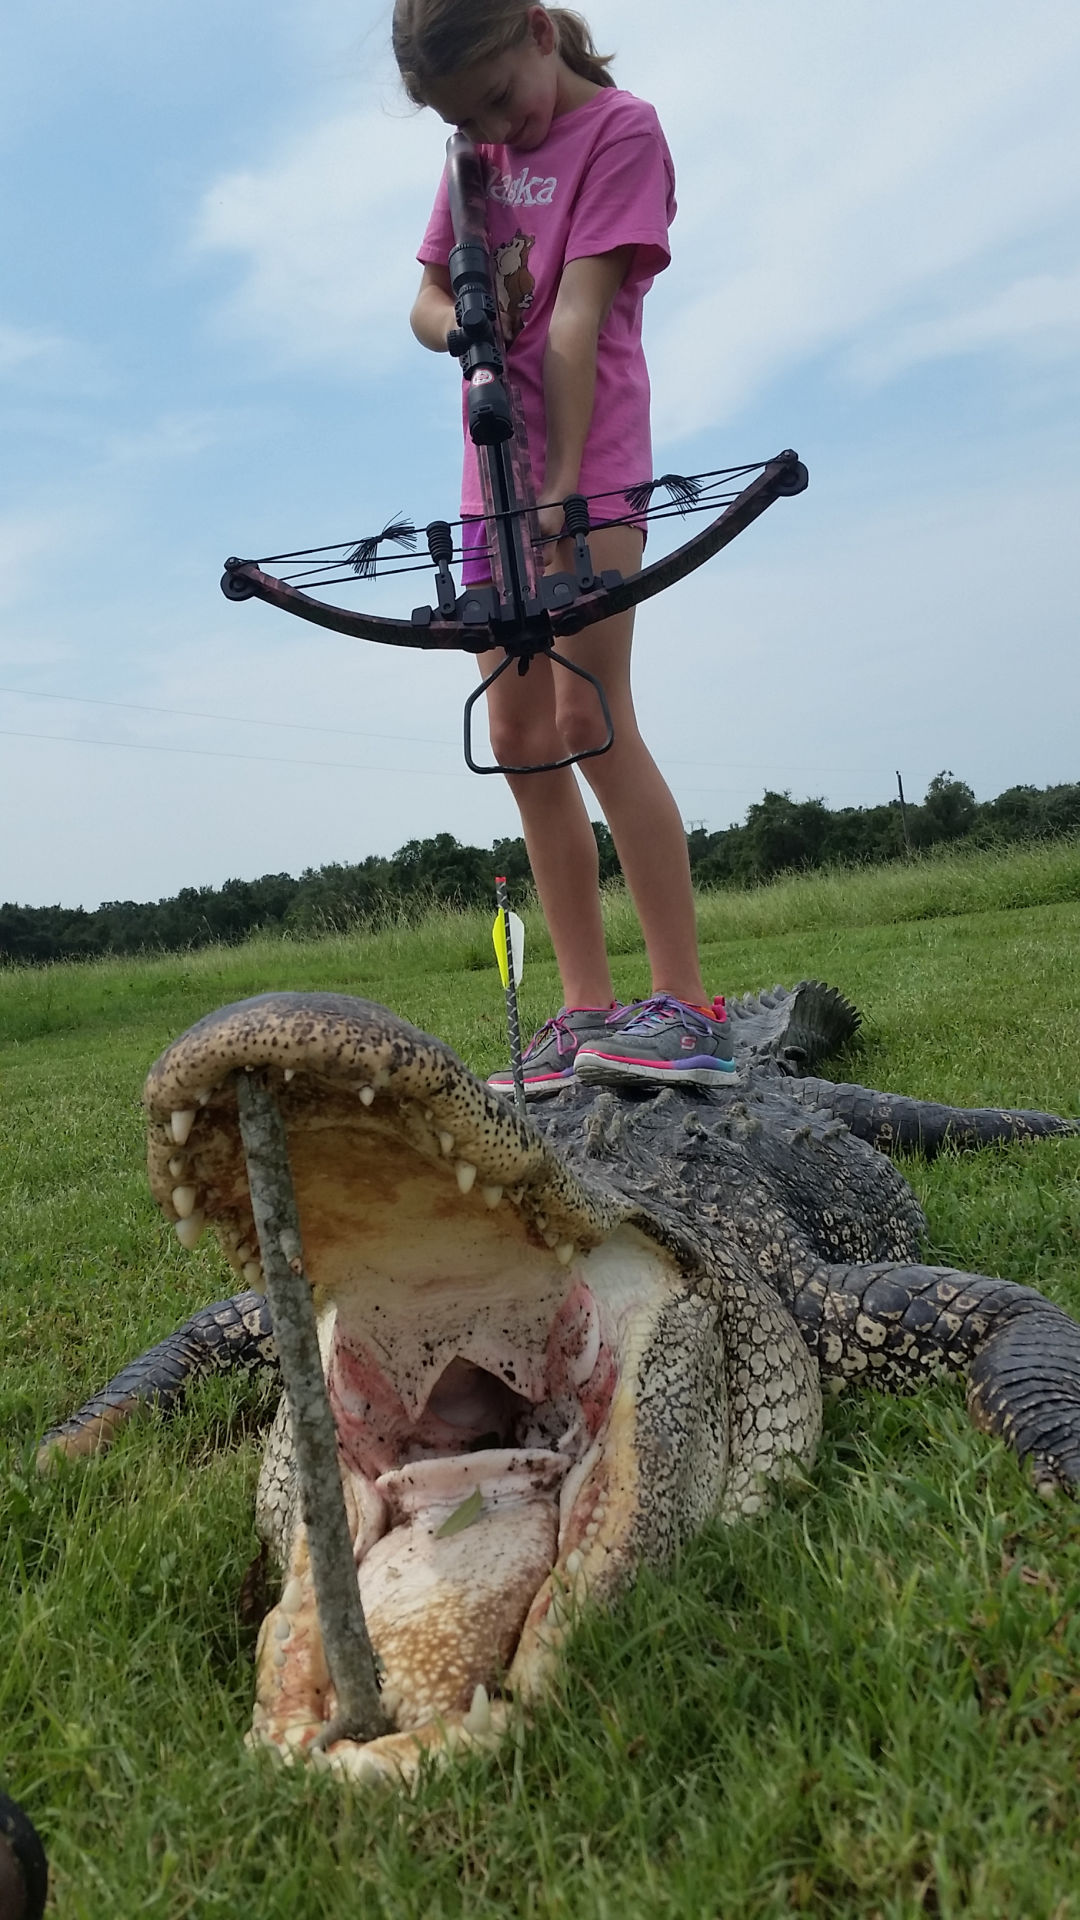 10 year old girl shoots 13 foot alligator with crossbow advosports